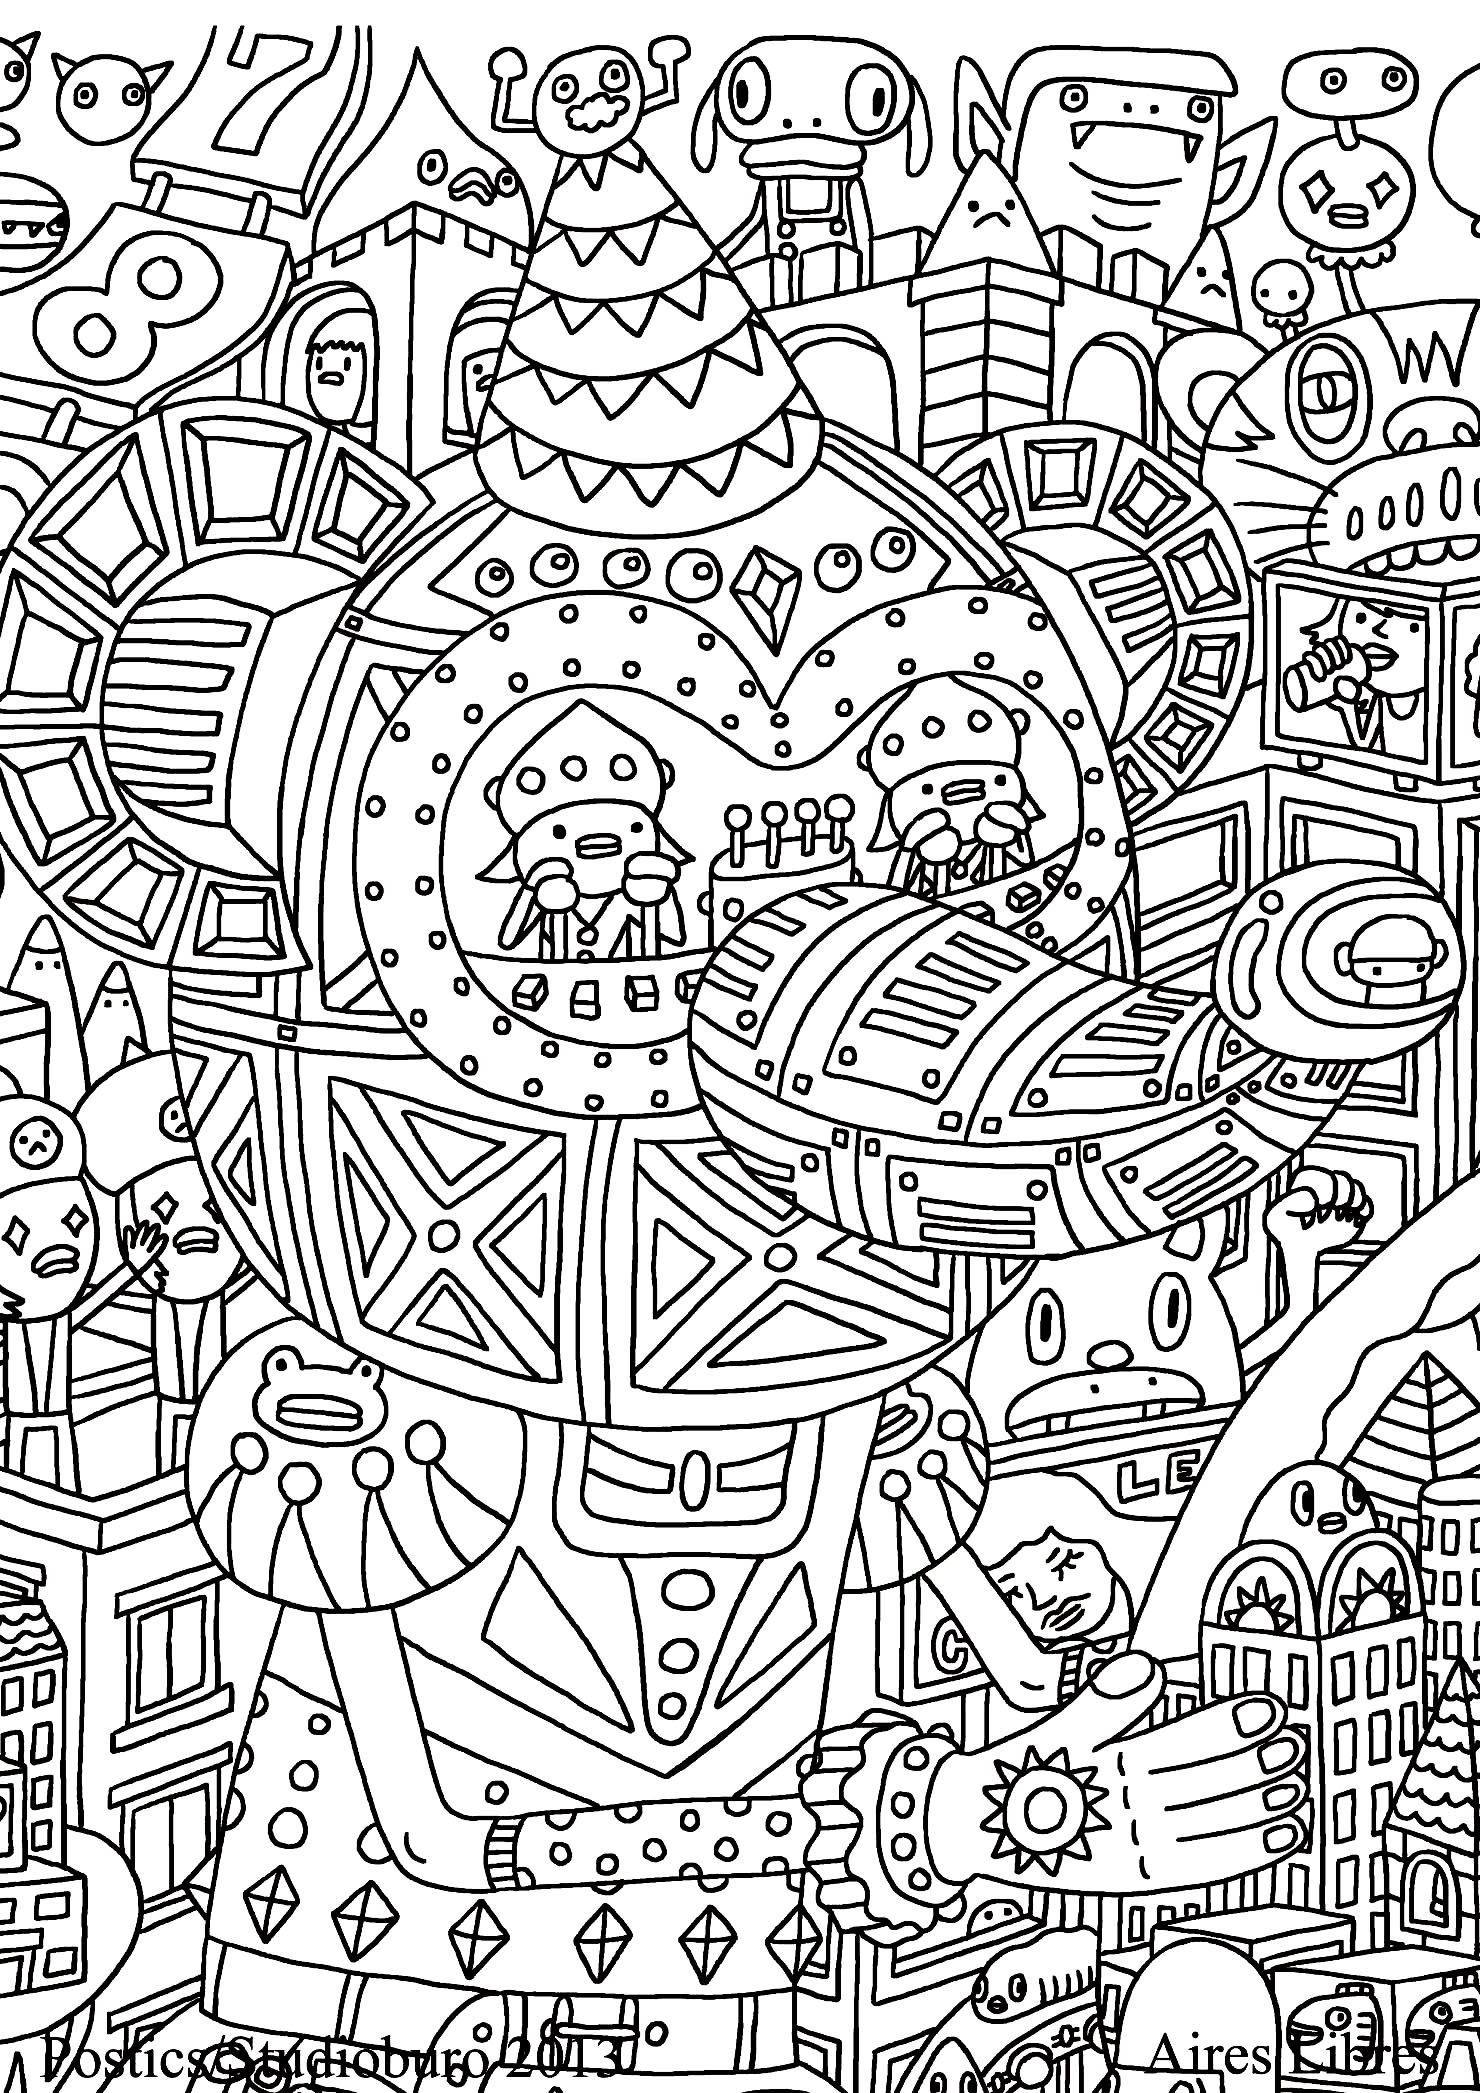 doodle coloring pages sweet doodle colouring page by pound key on deviantart coloring doodle pages